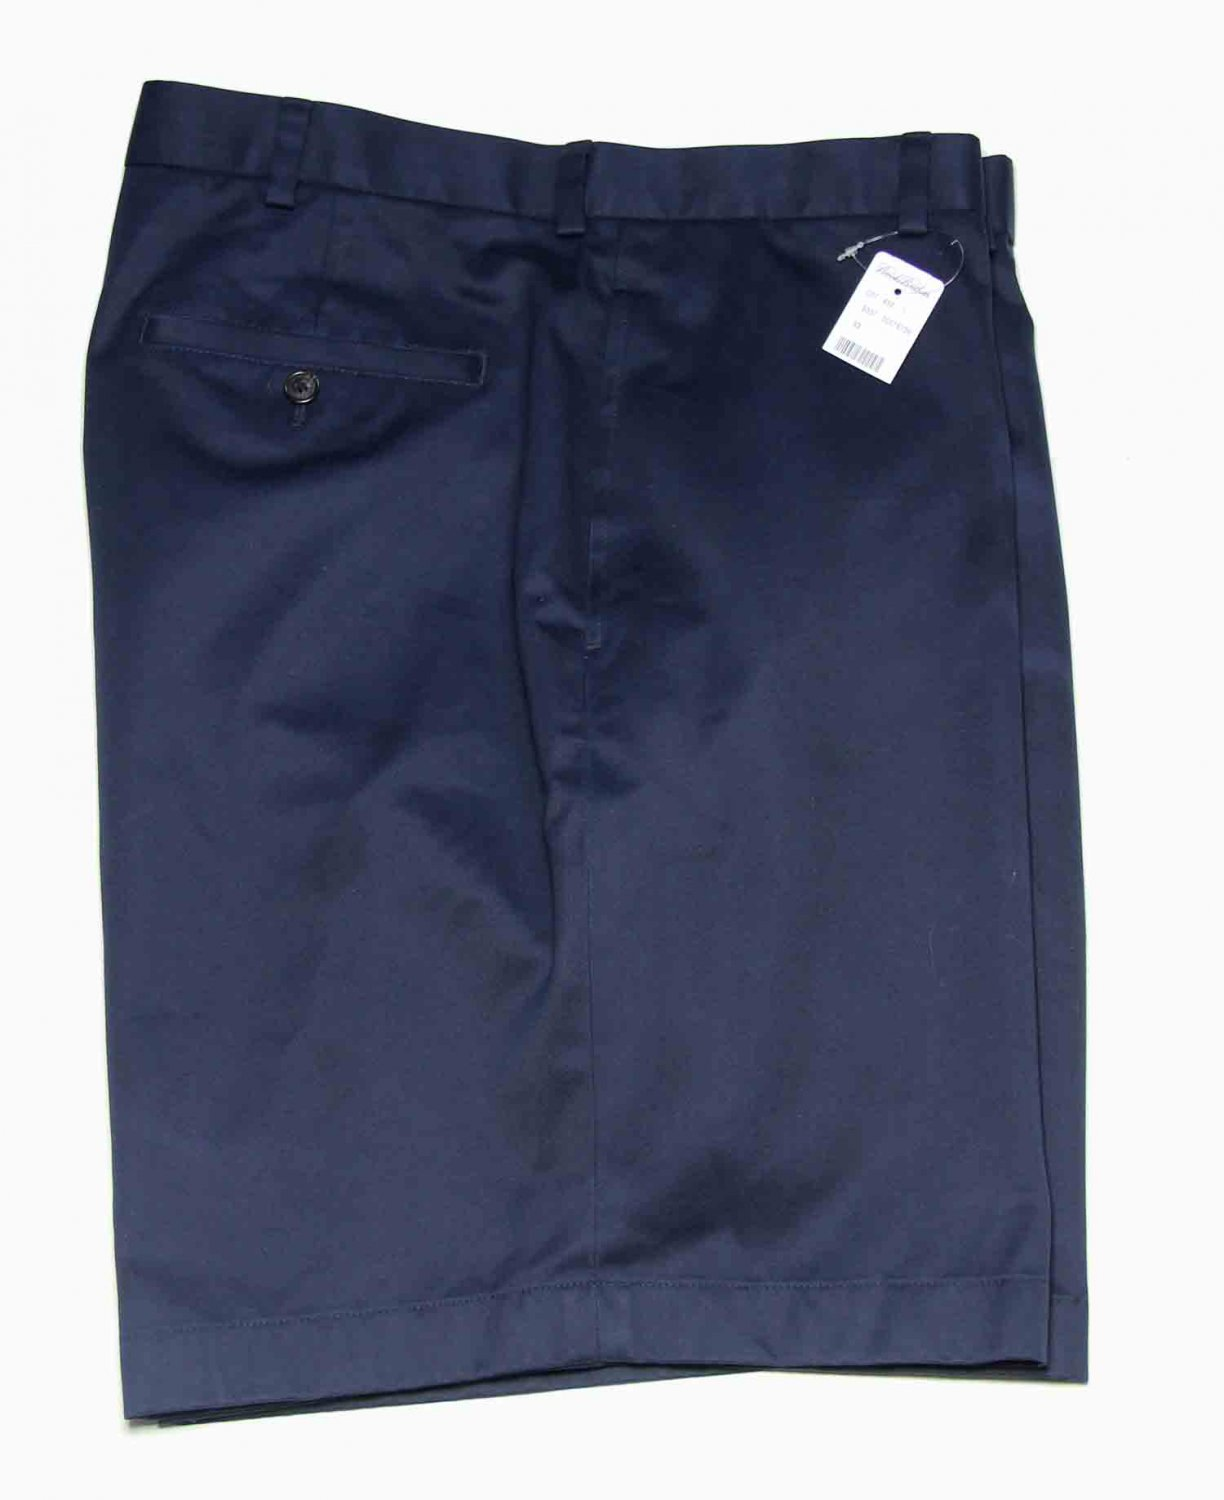 Mens Brooks Brothers Advantage Chino Shorts Navy Blue Size 40